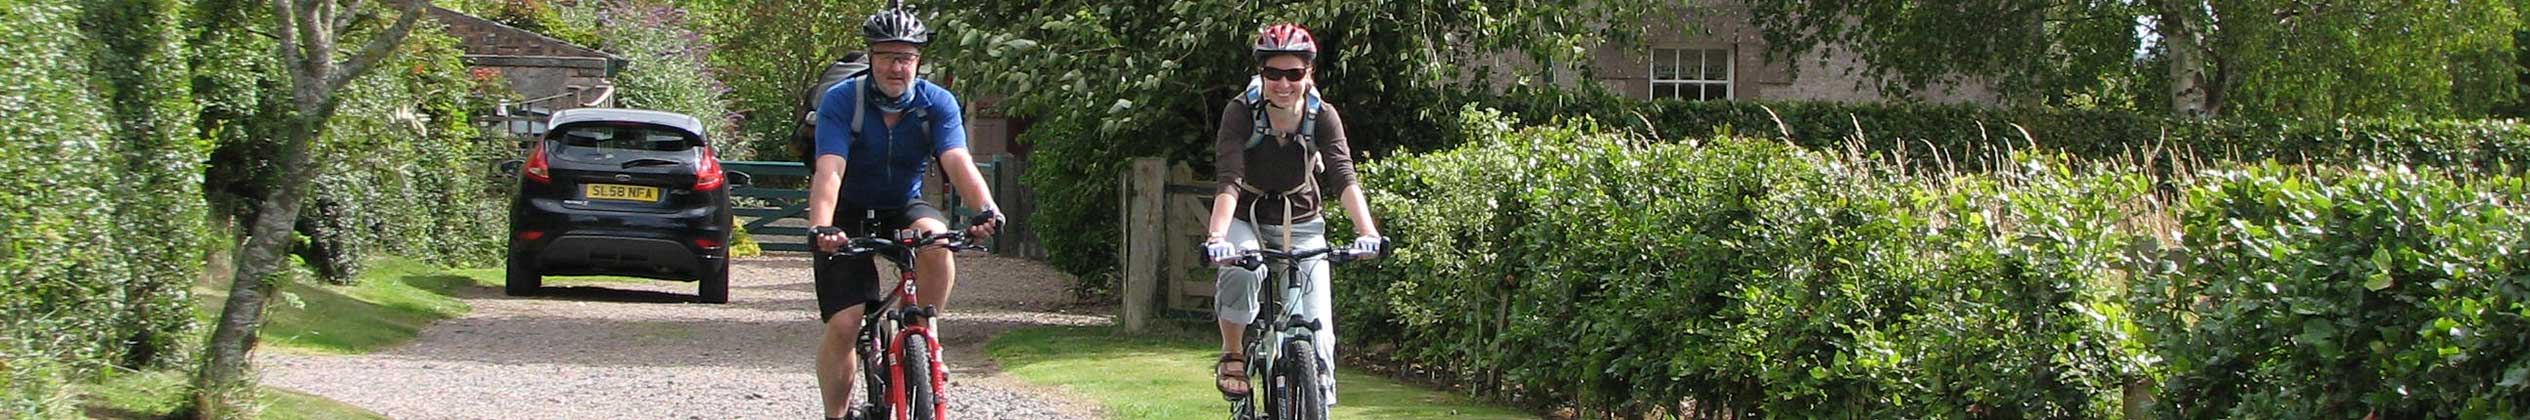 Golf, Cycling, Riding in The Scottish Borders